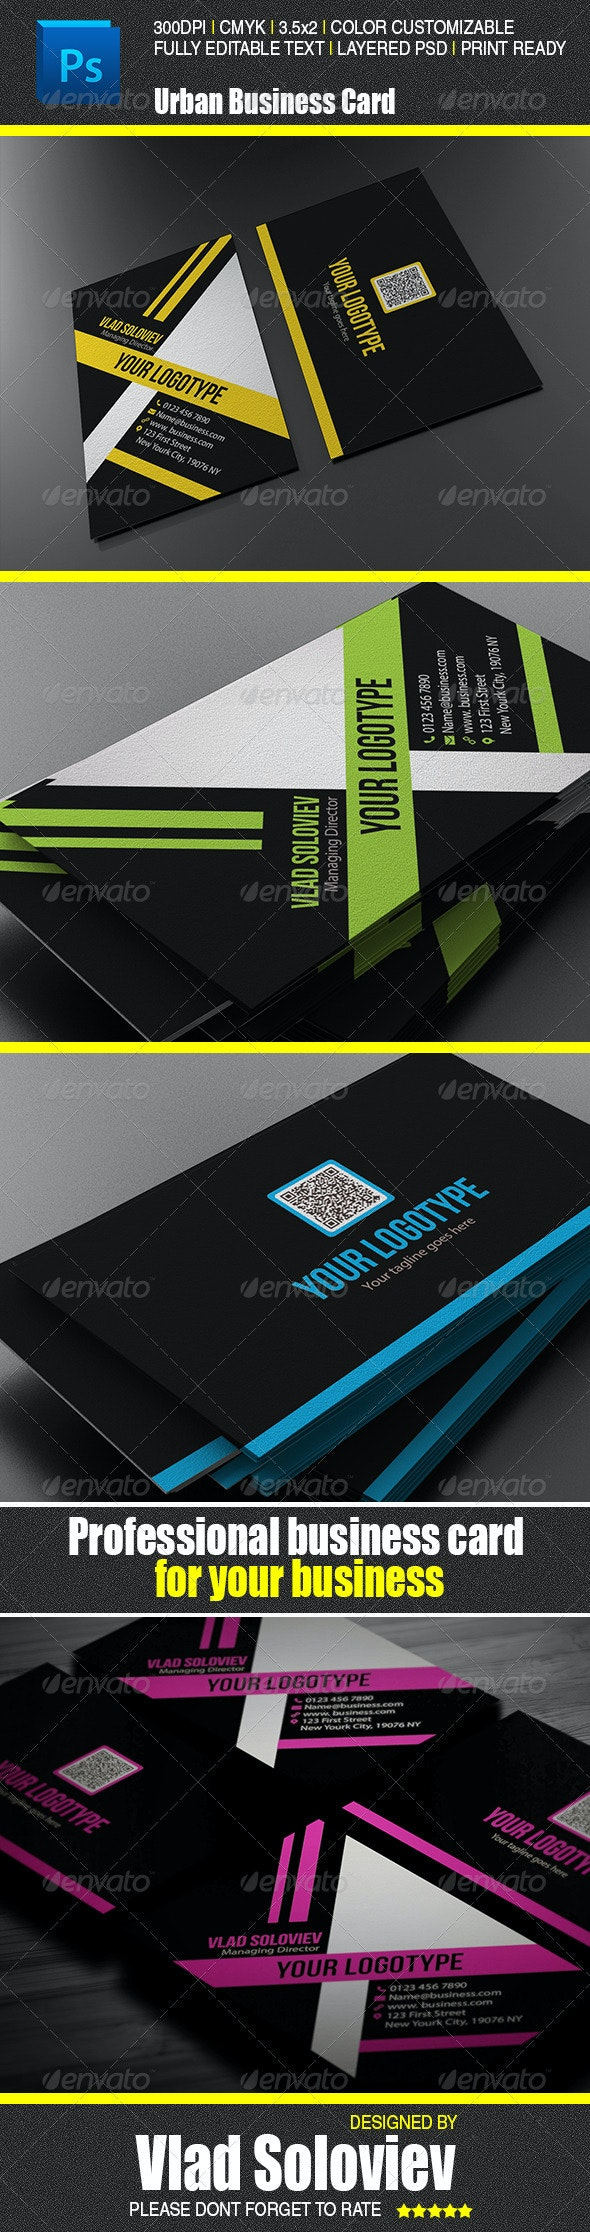 Urban Business Card - Corporate Business Cards